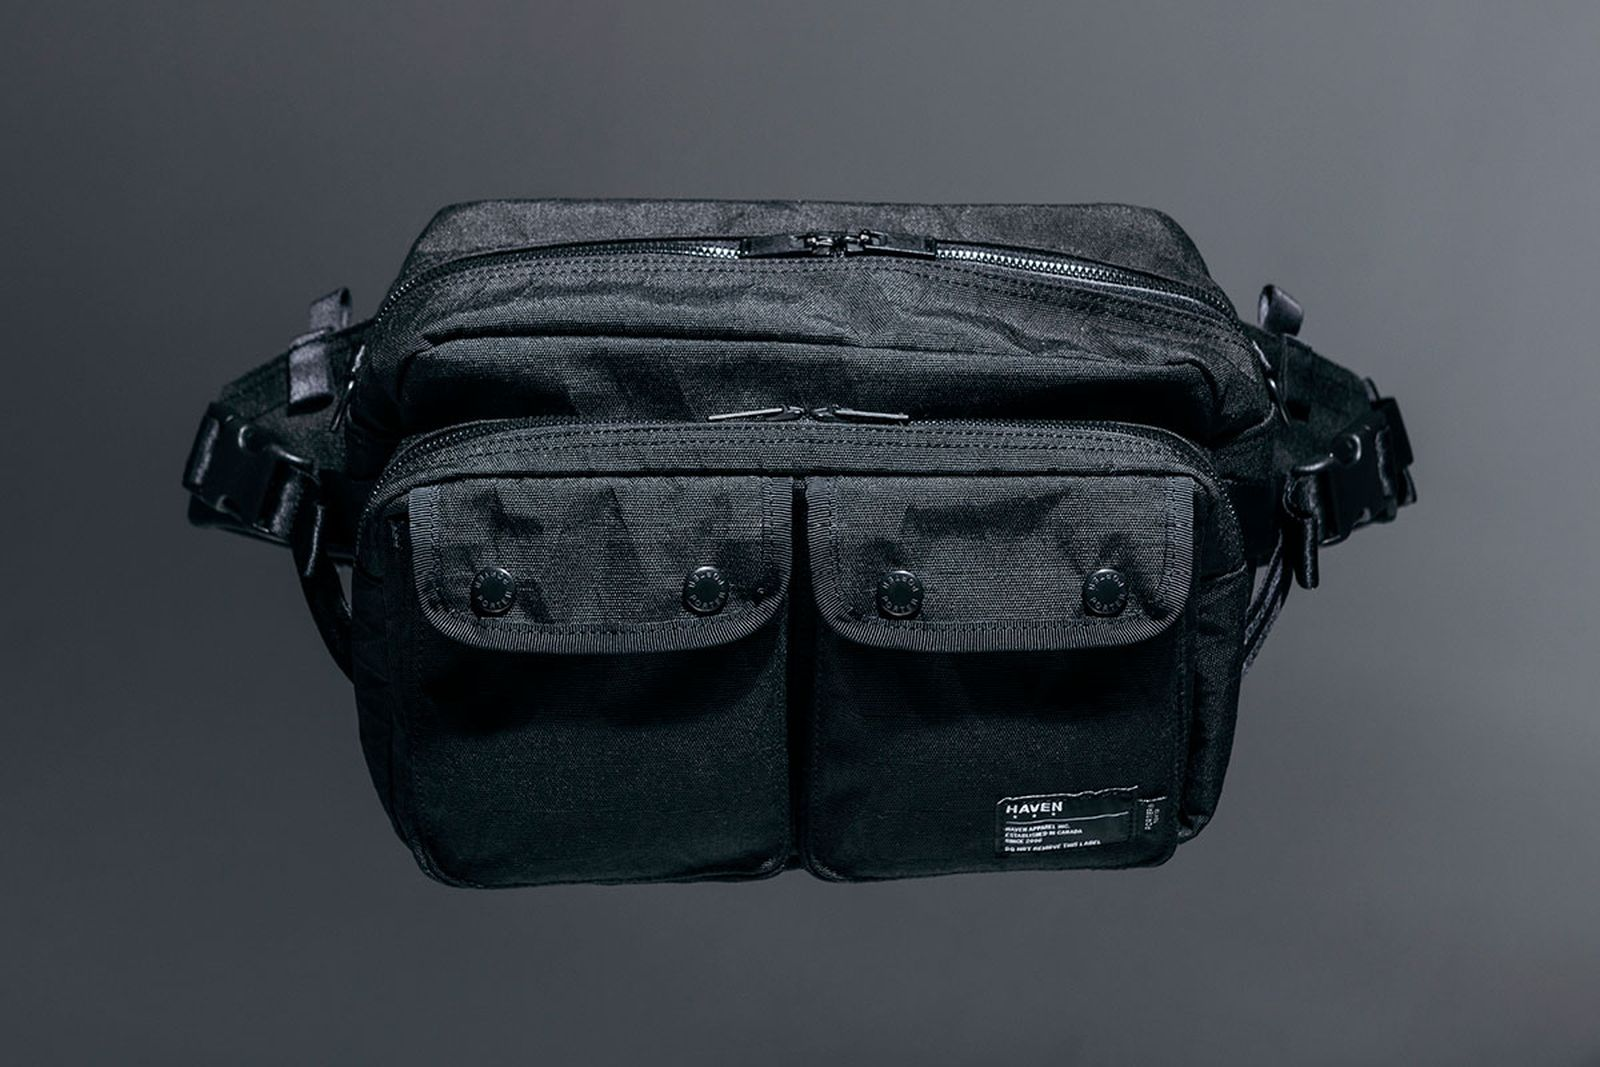 haven x porter bag on grey background